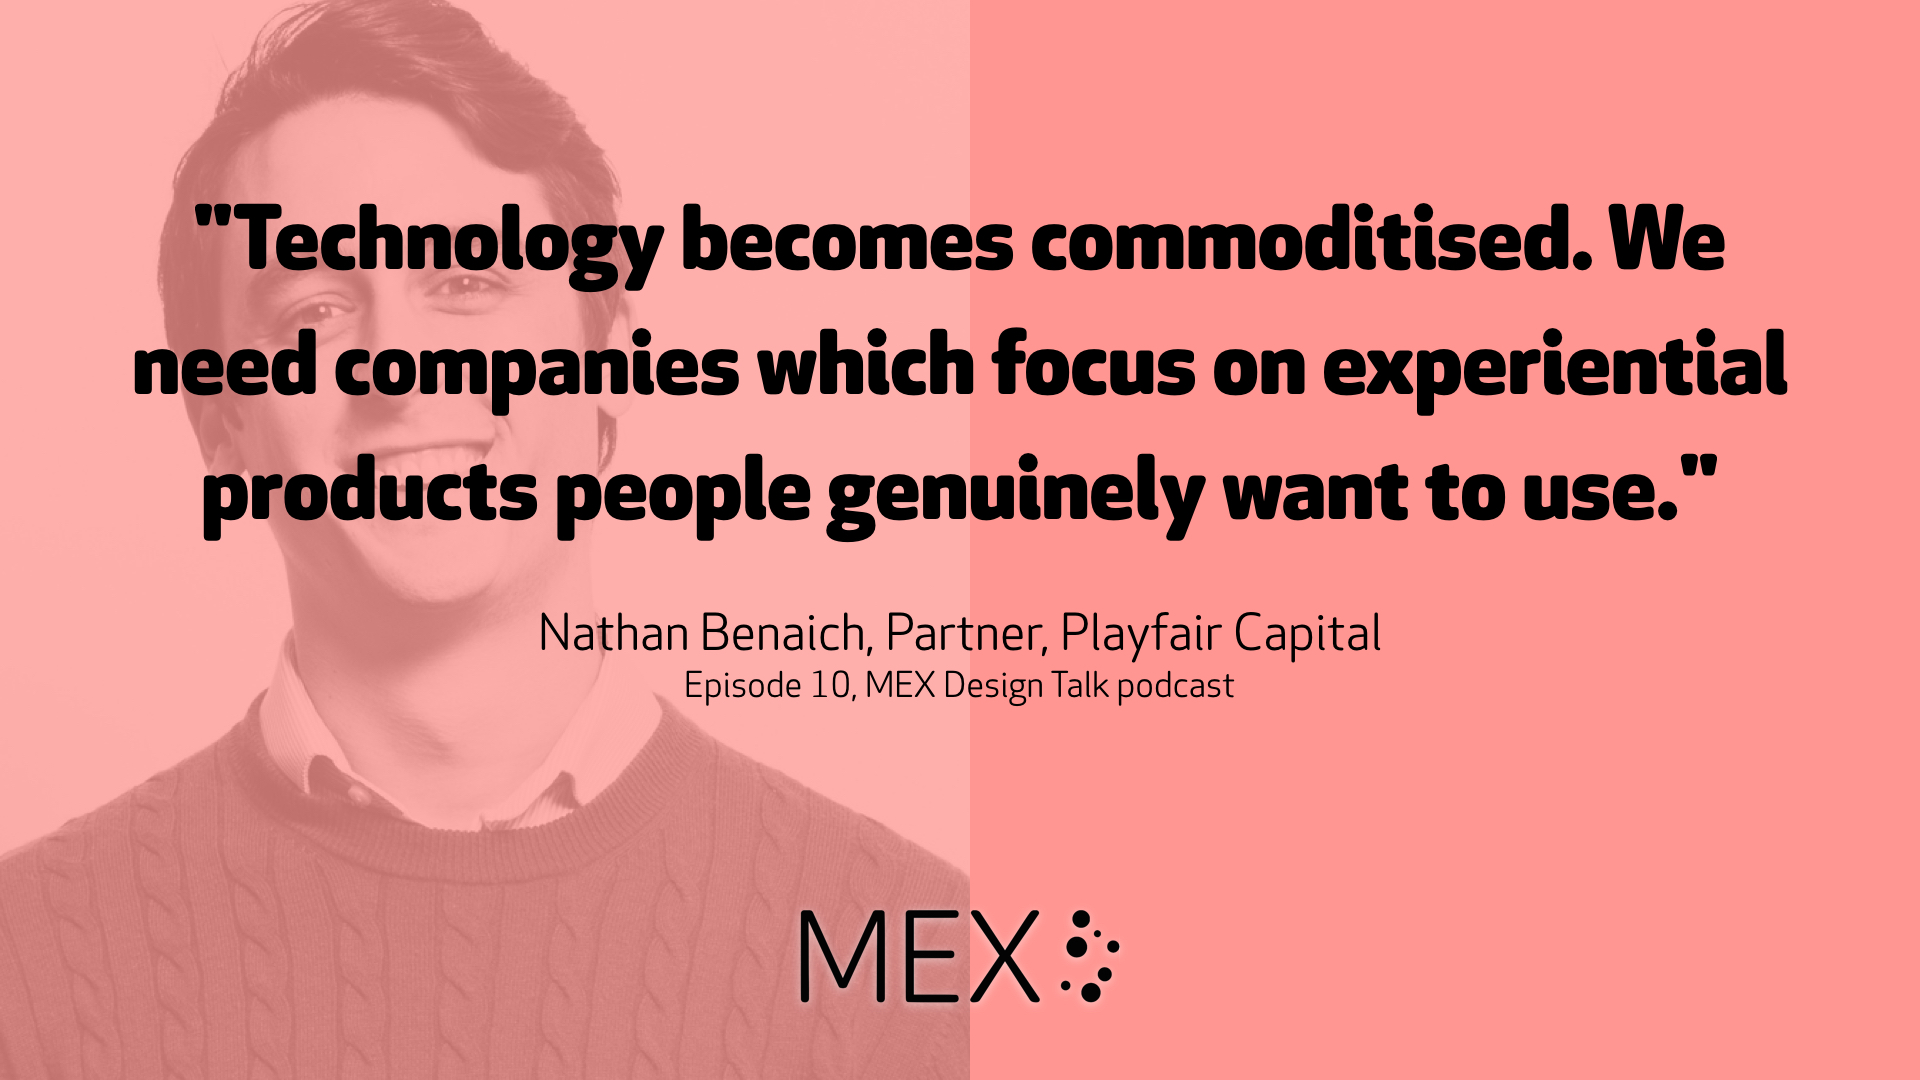 """Technology becomes commoditised. We need companies which focus on experiential products people genuinely want to use."" Nathan Benaich, Partner, Playfair Capital on ep. 10 of MEX Design Talk podcast"